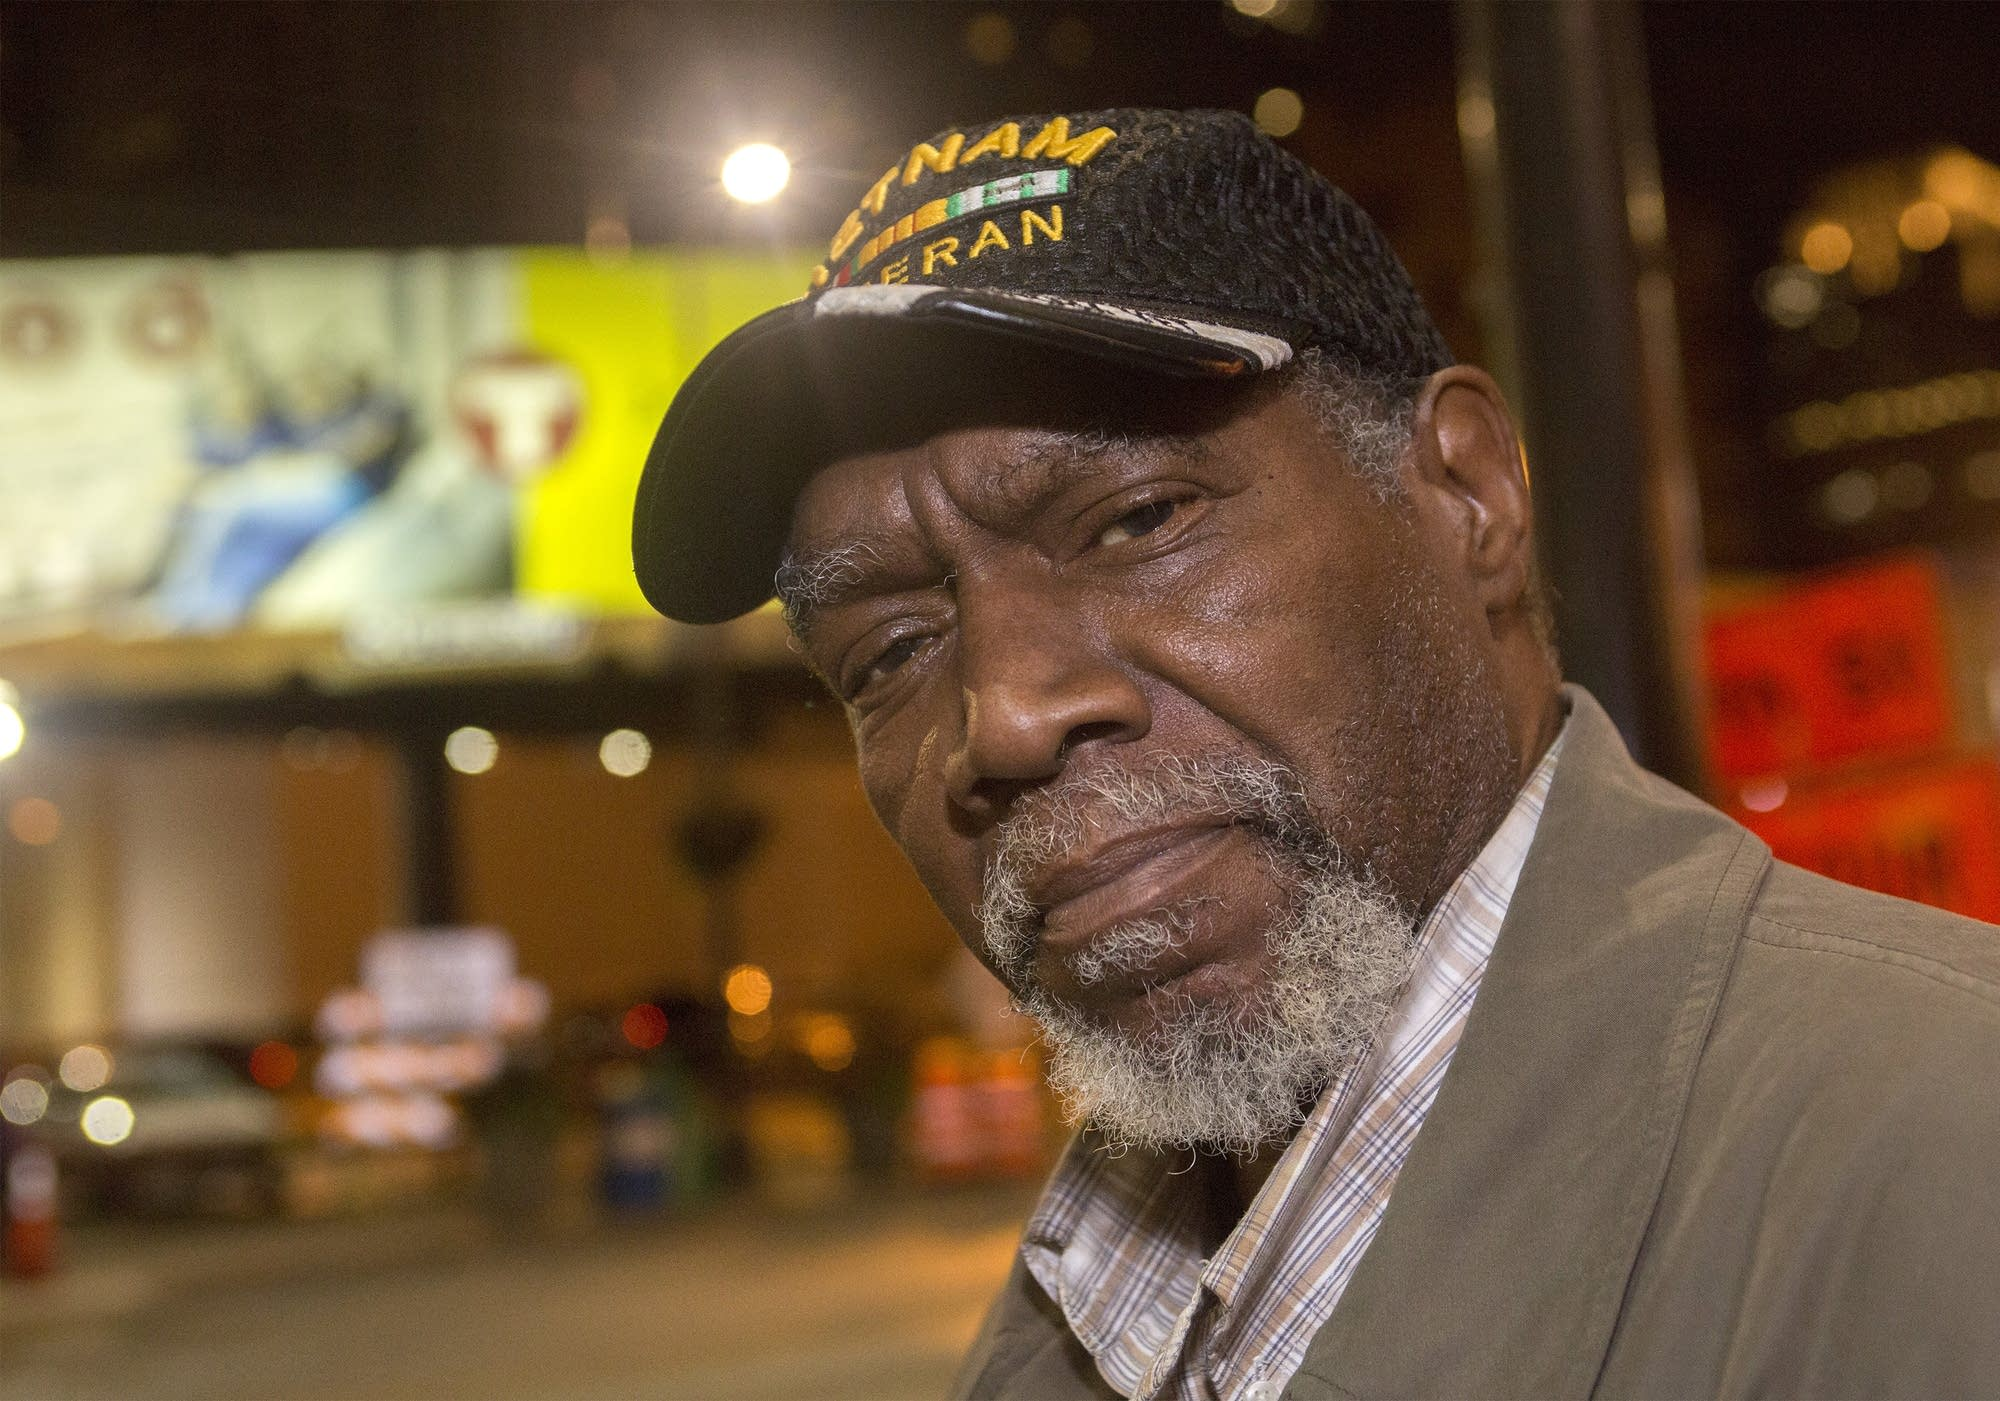 Vietnam veteran Vernon Patterson sits by the Loon Cafe.